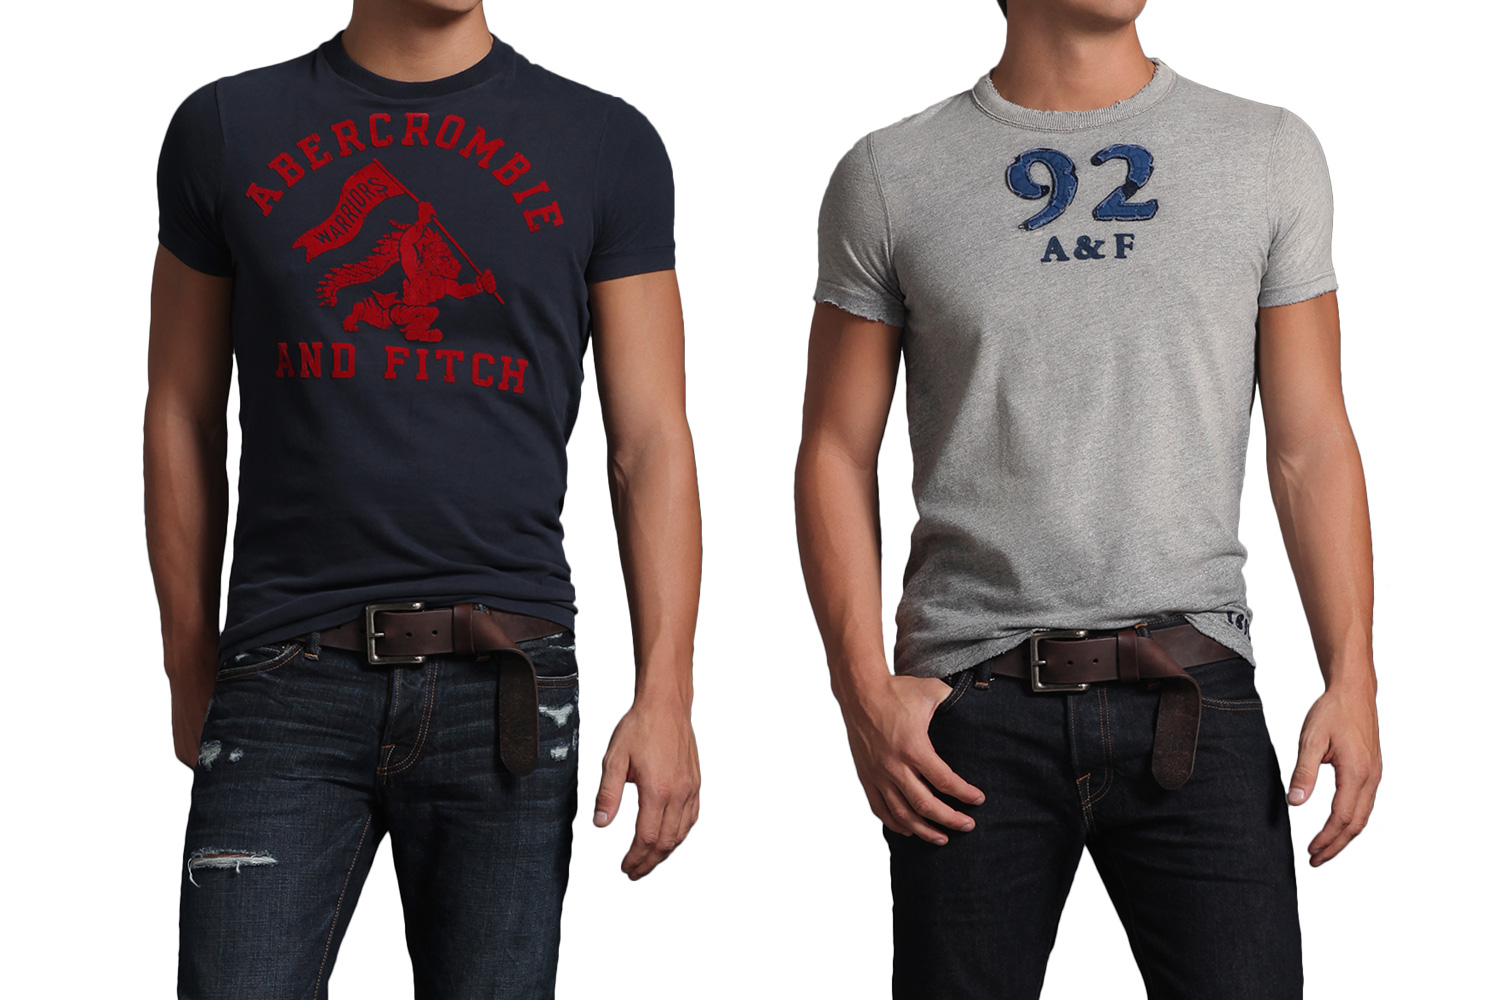 ABERCROMBIE_and_FITCH_MENS_graphic_tees_fashion.jpg